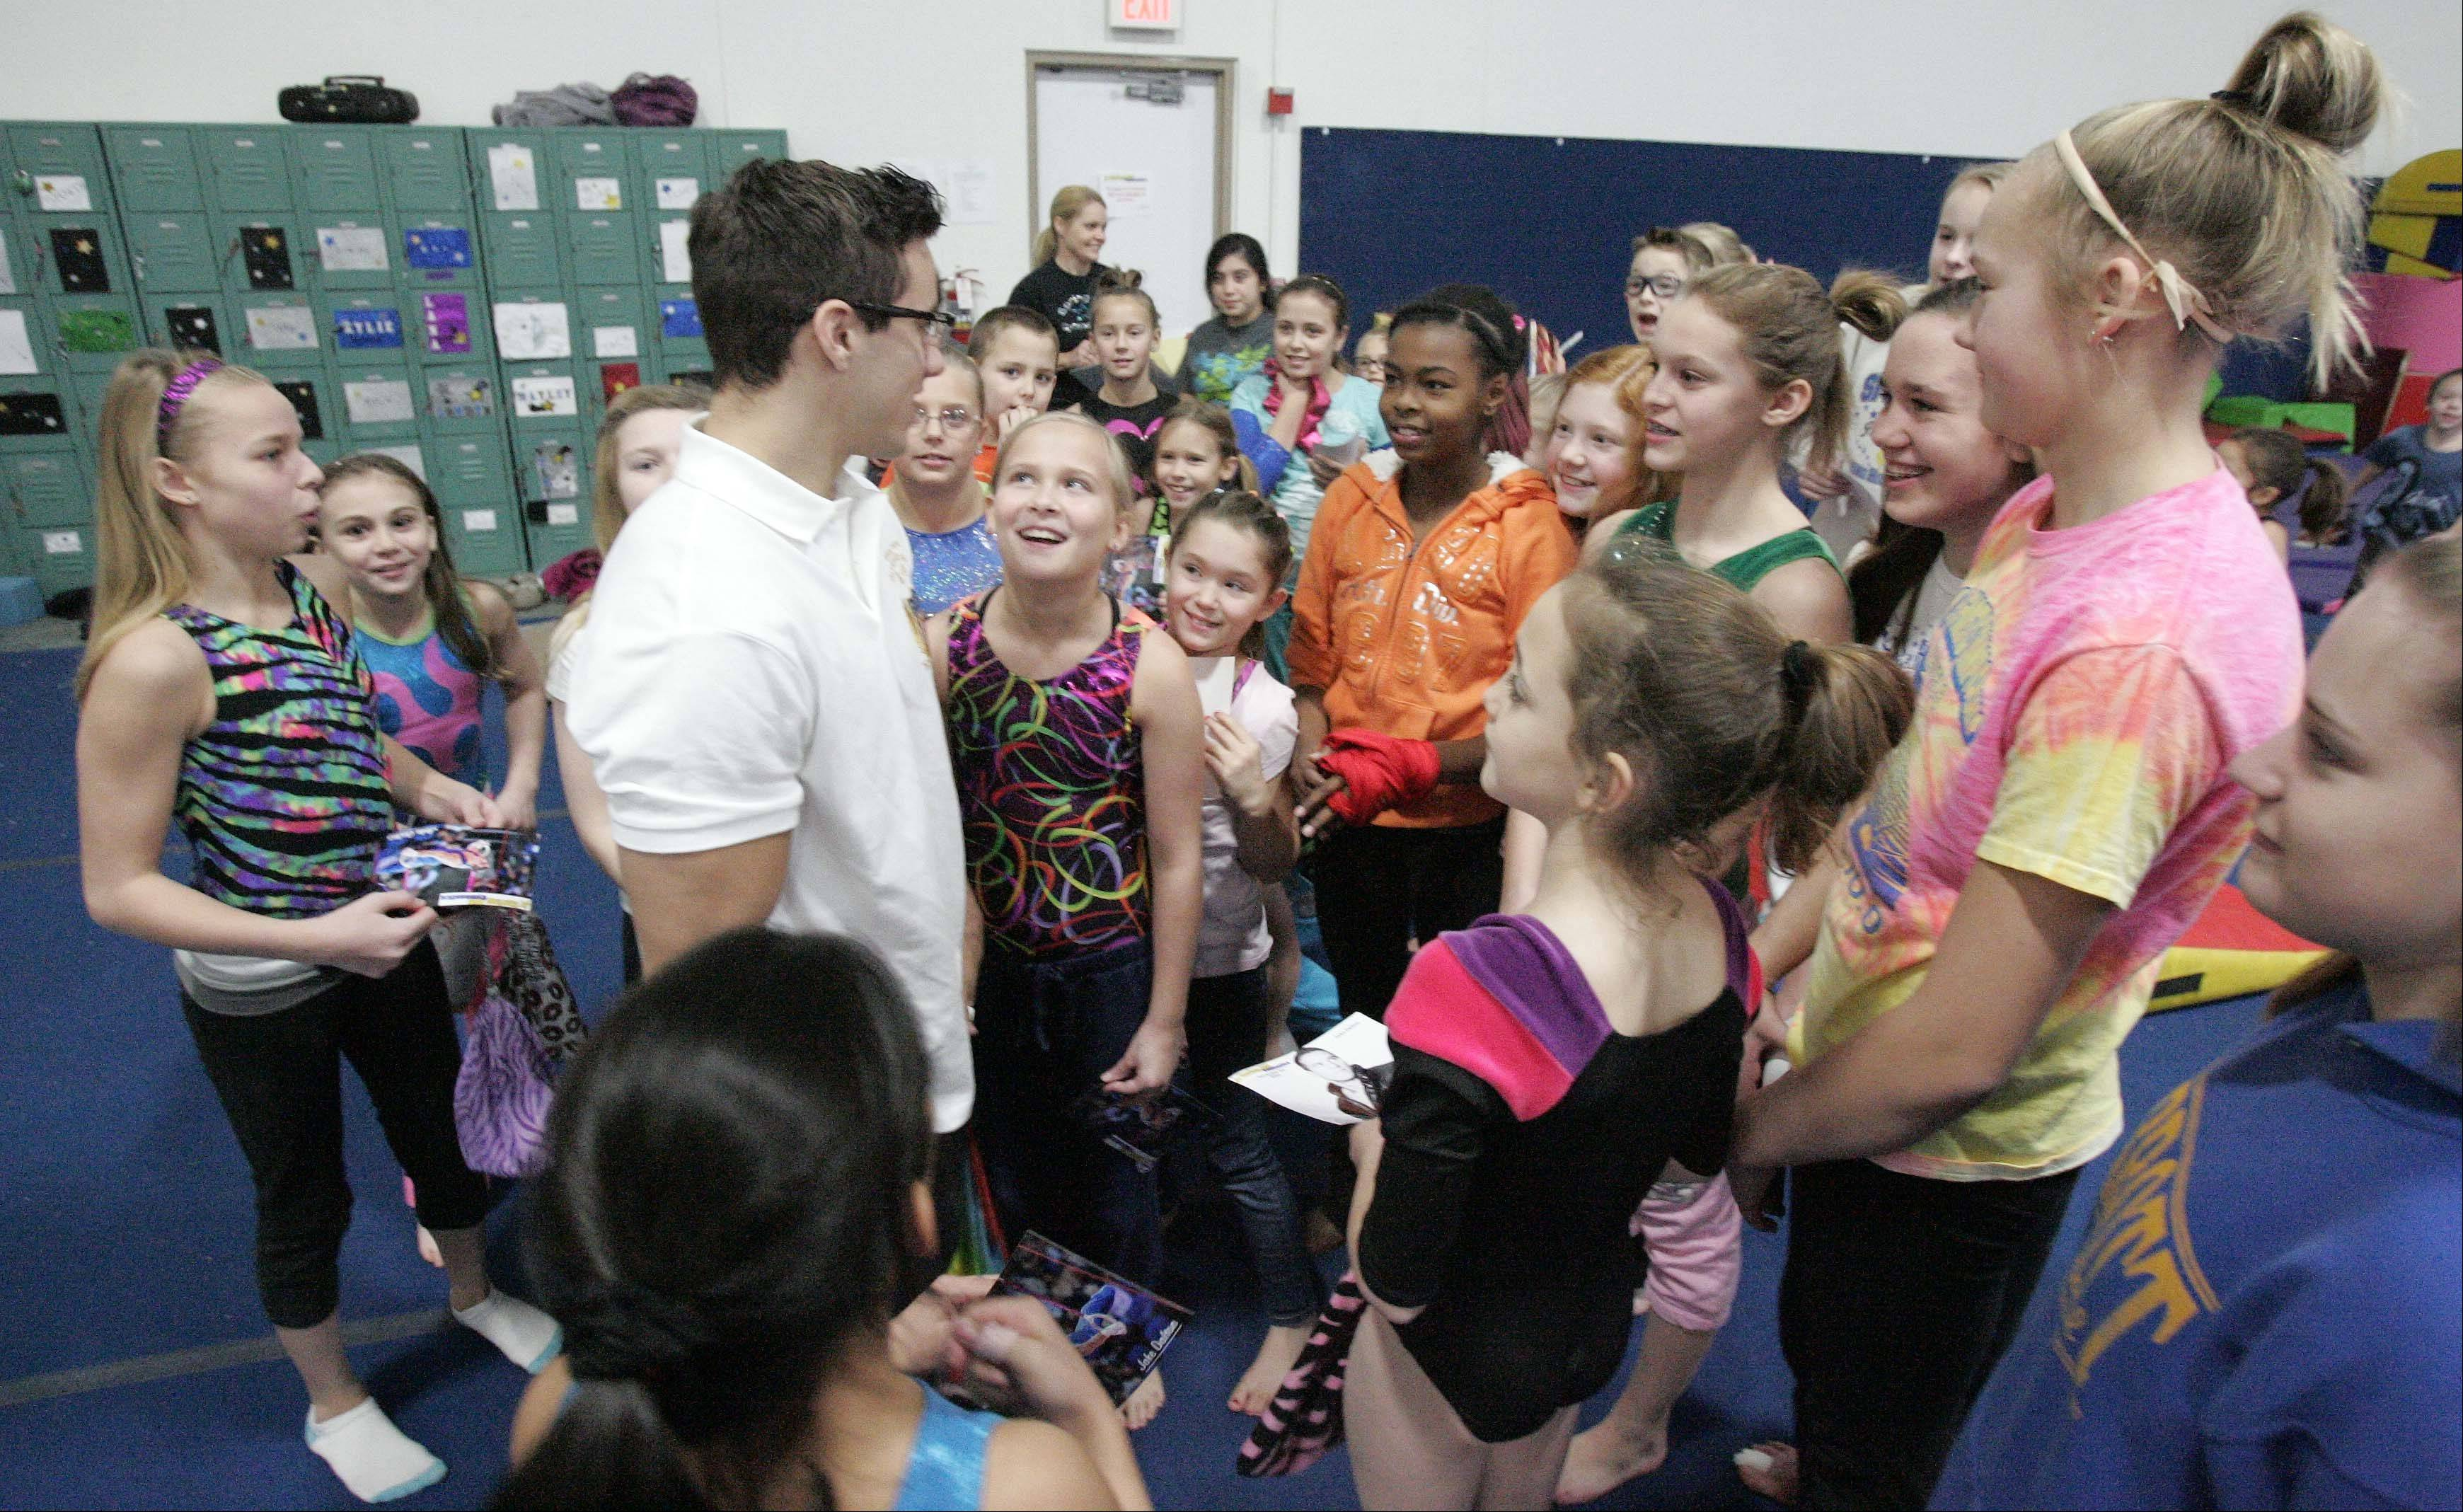 Olympic gymnast Jake Dalton meets young fans Saturday during his appearance at Spring Hill Gymnastics in Elgin.